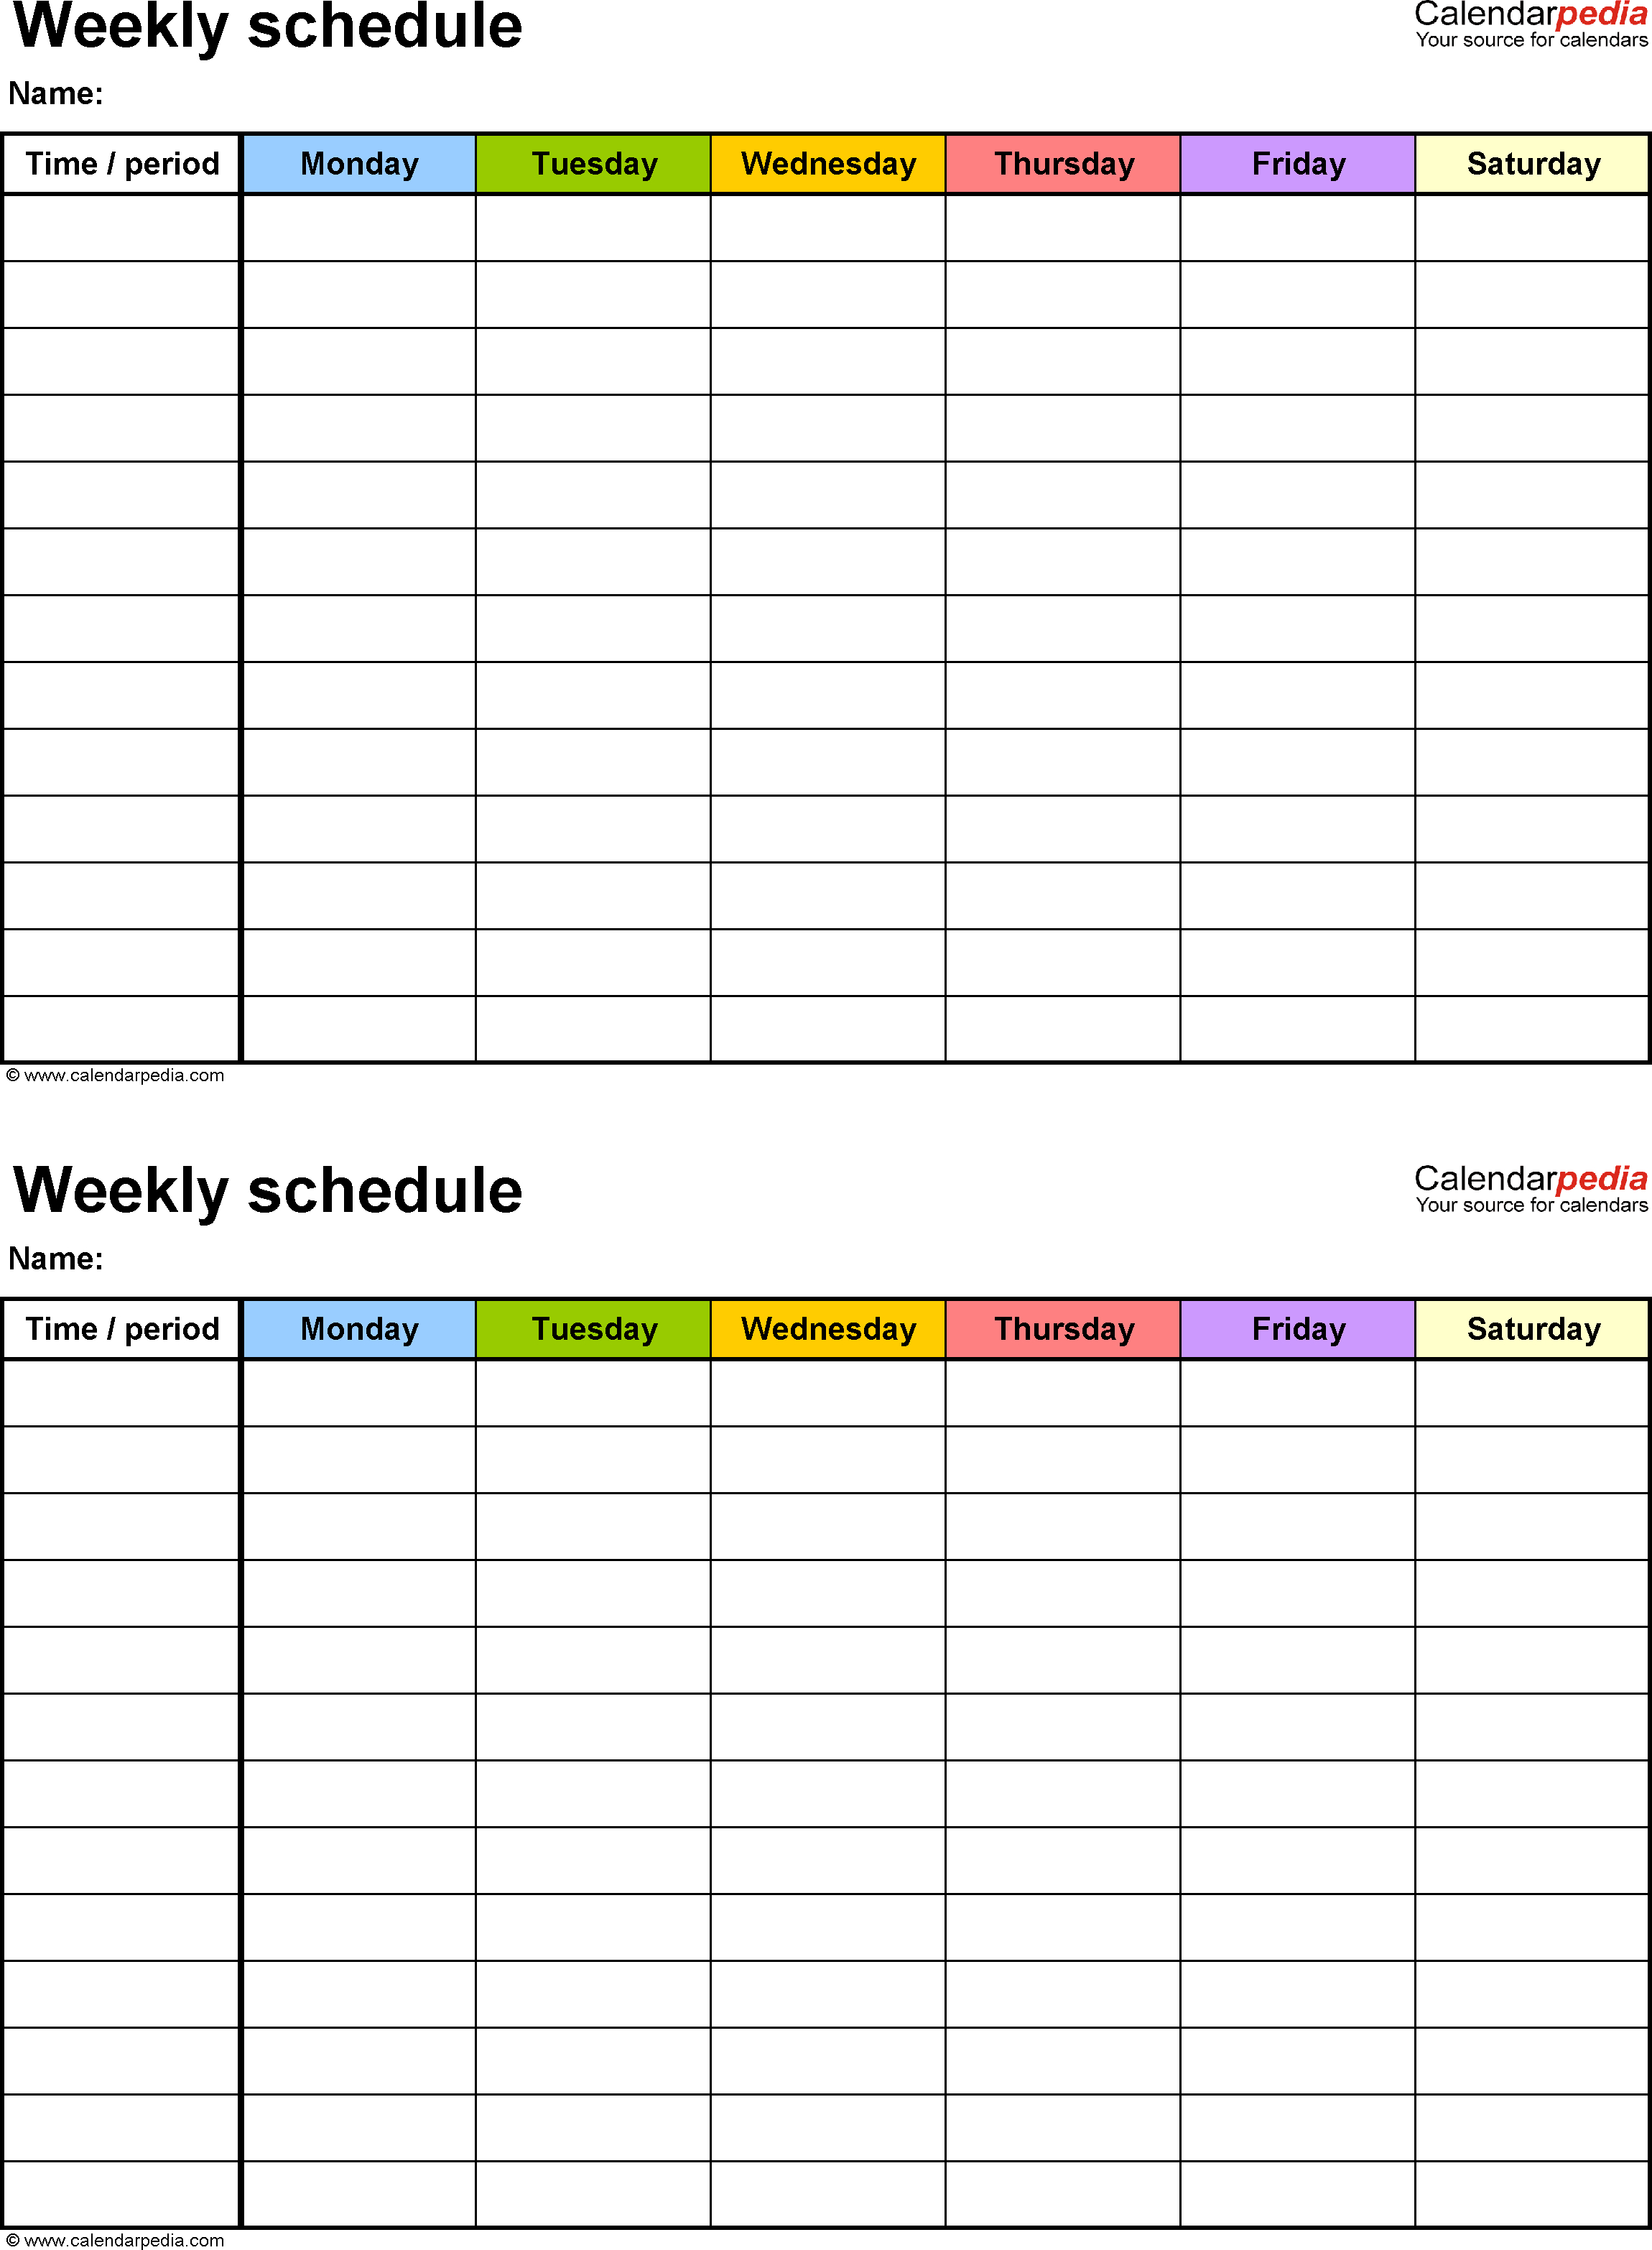 Weekly Schedule Template For Word Version 9: 2 Schedules On intended for Two Week Calendar Template Excel